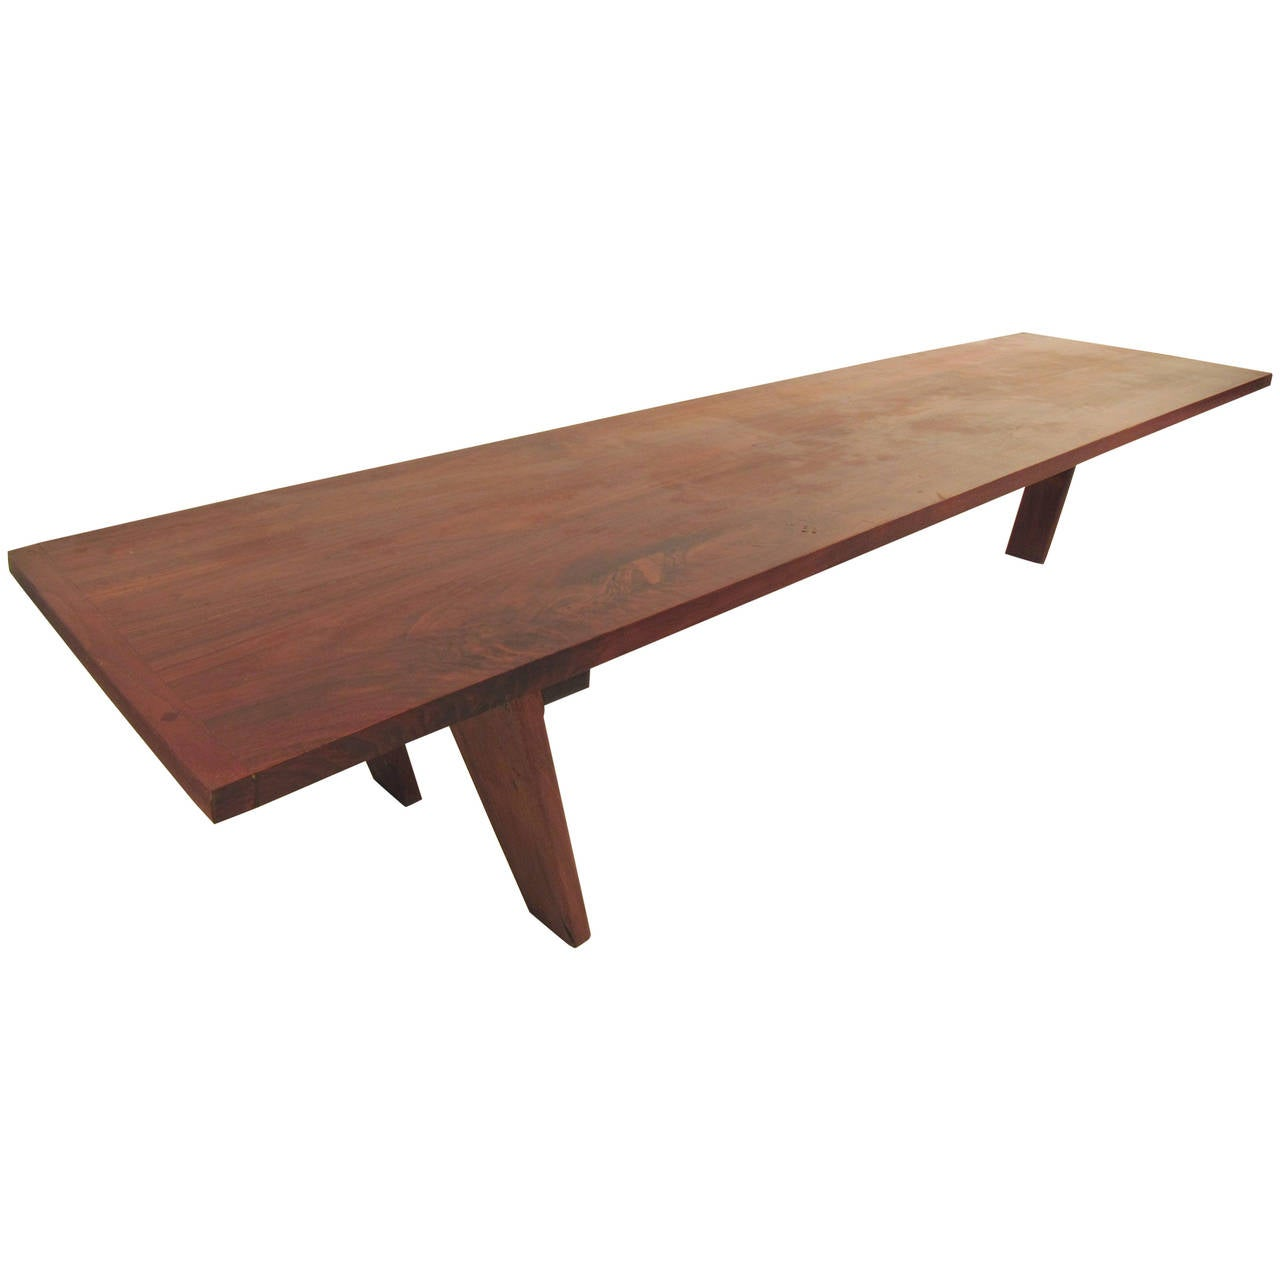 Vintage Modern Studio Made Coffee Table Circa 1959 For Sale At 1stdibs